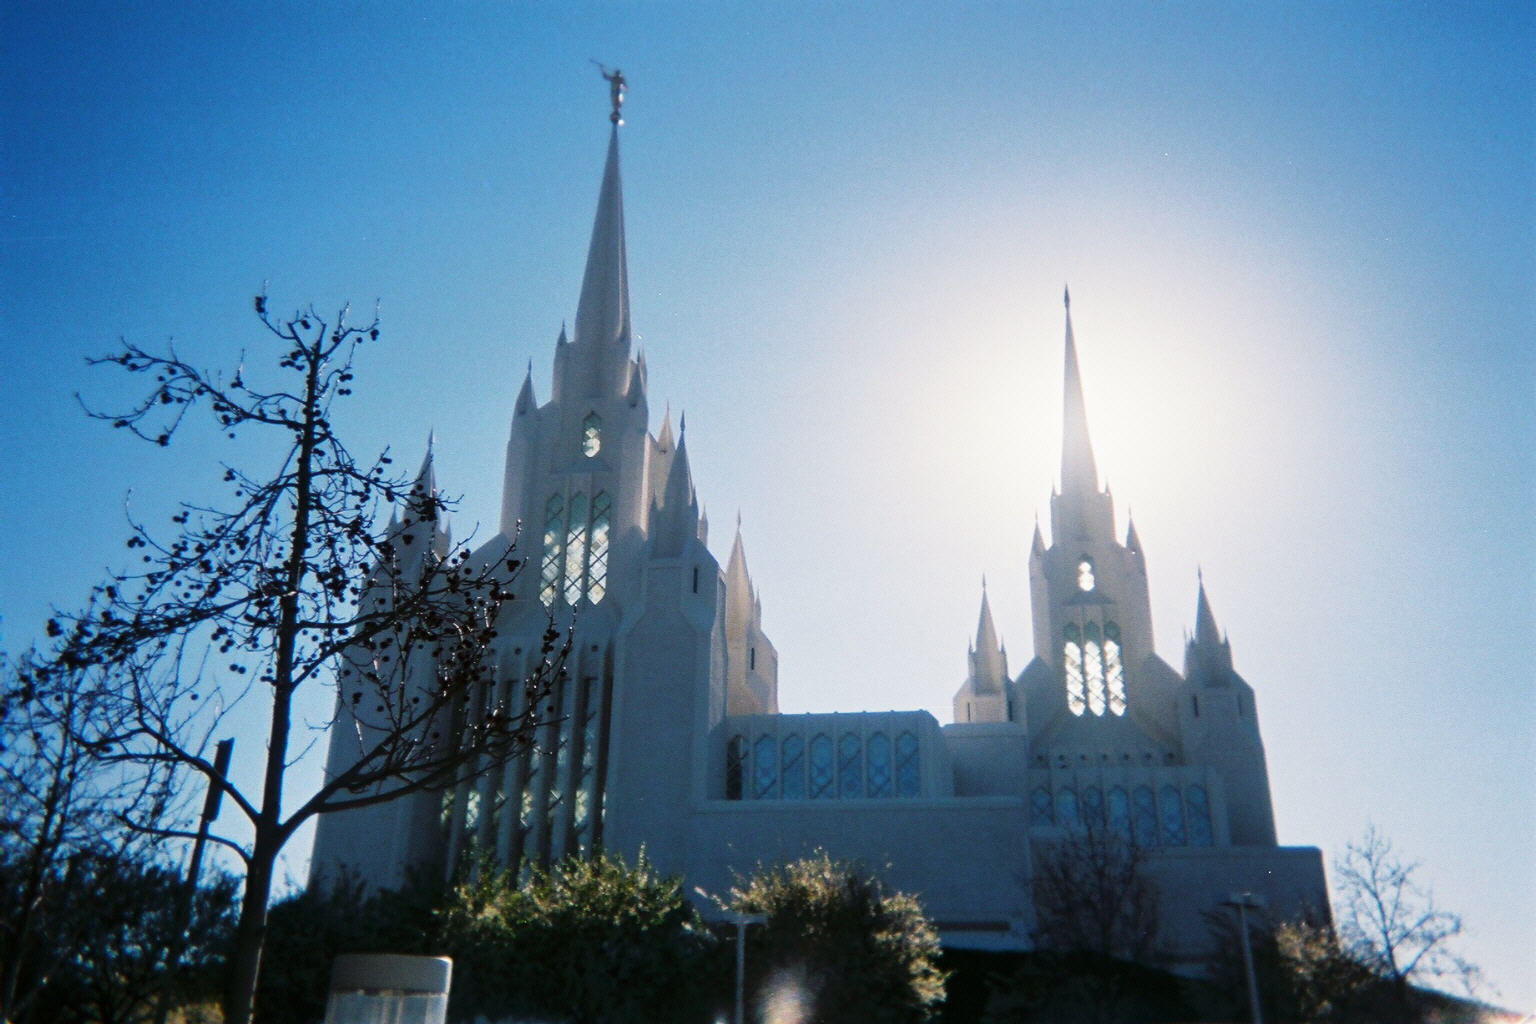 ca_feb_2004_sun_behind_mormon_temple.jpg